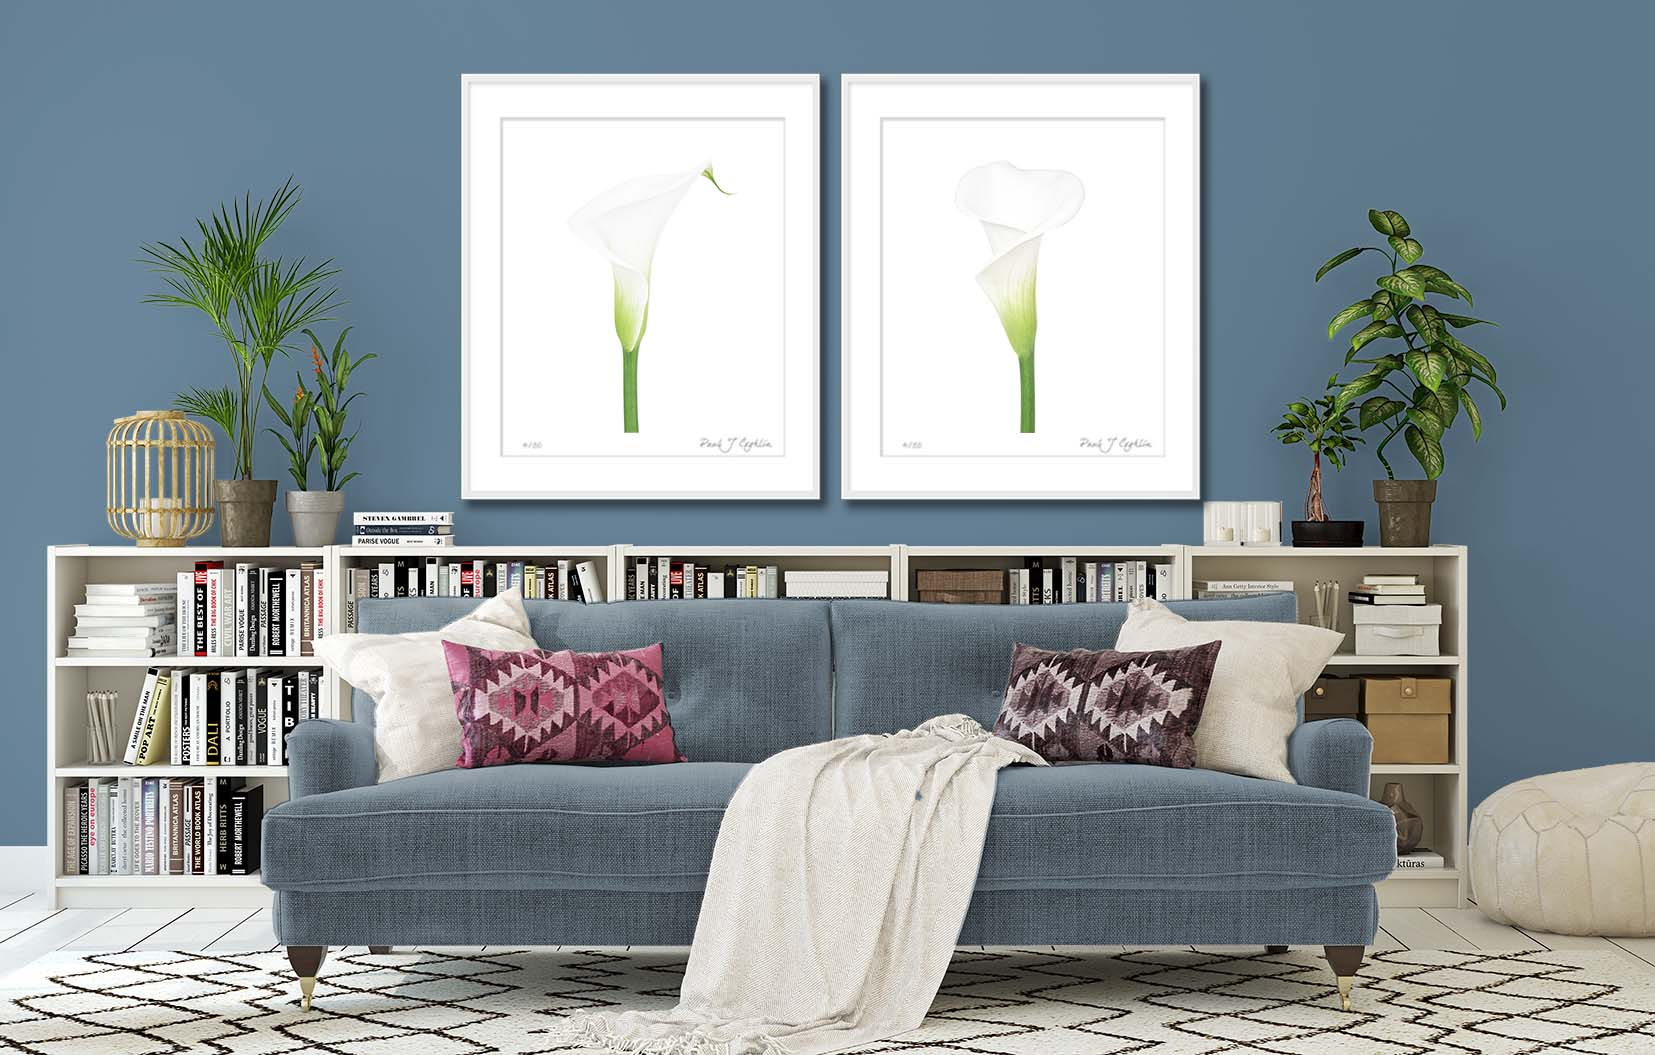 Arum Lily (Z. aethiopica) on White I + II. Two limited edition botanical studies of Arum Lilies by fine art photographer Paul Coghlin FBIPP.